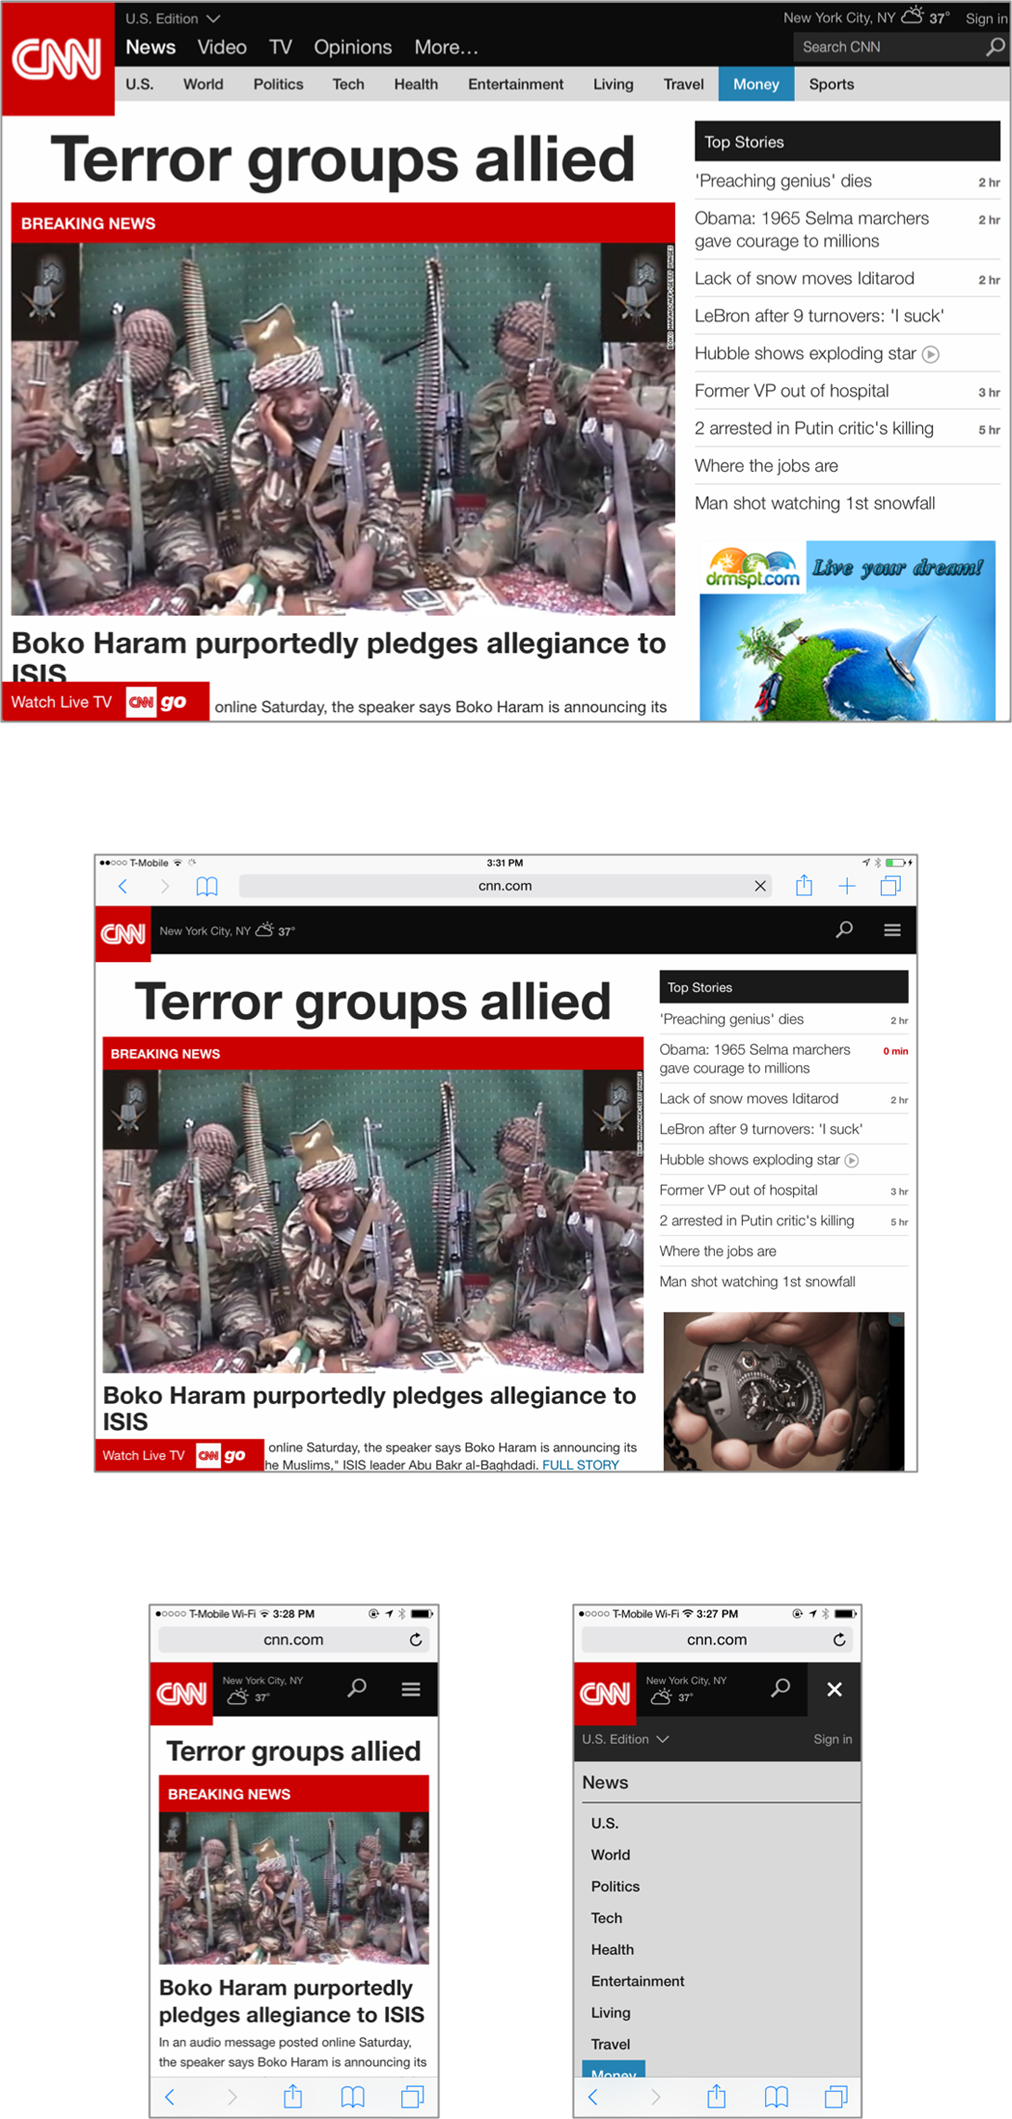 CNN's website uses a responsive layout that adapts page elements to fit different screen sizes, while offering a coherent experience